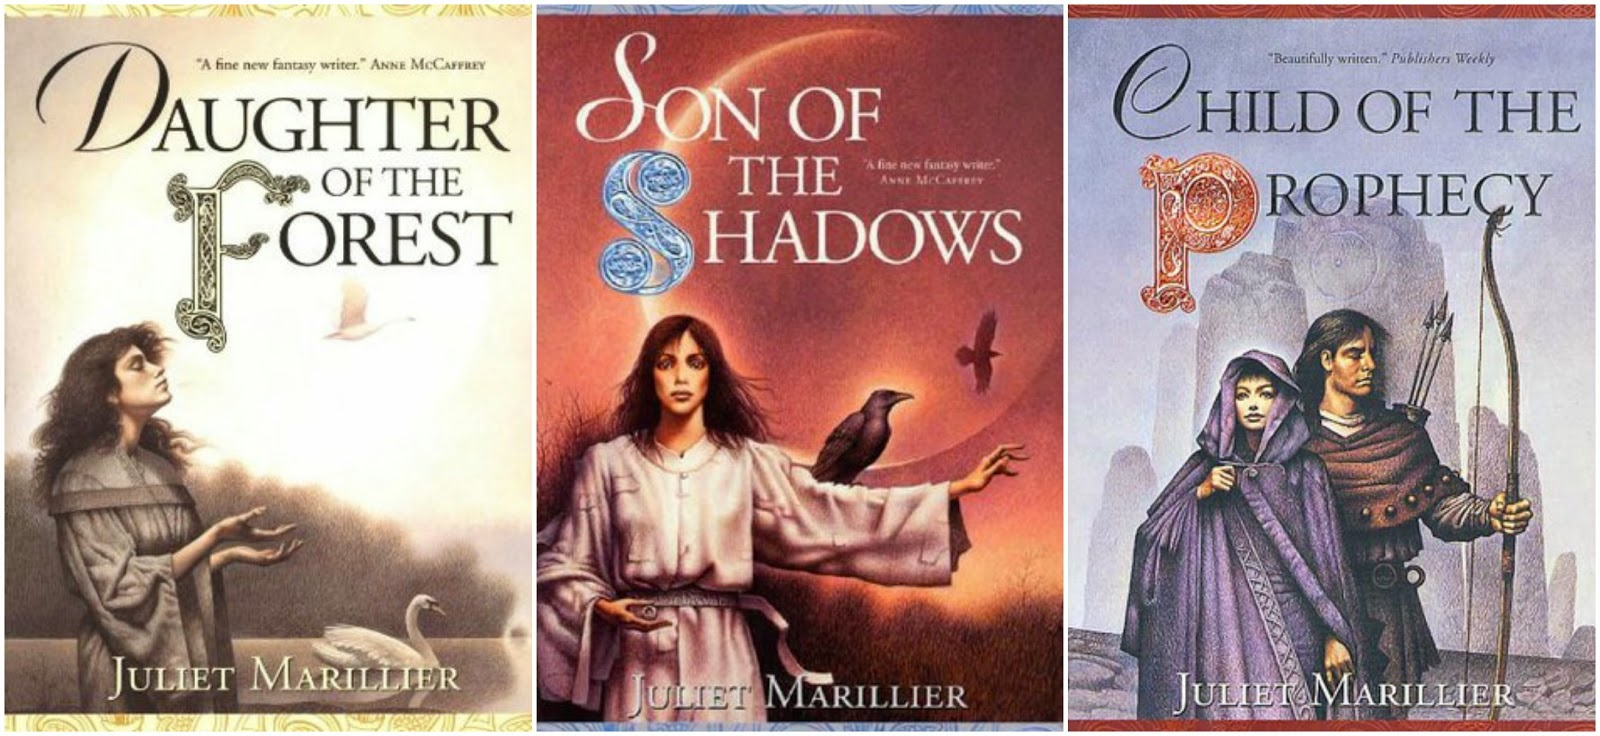 Daughter of the Forest / Son of the Shadows / Child of the Prophecy book cover